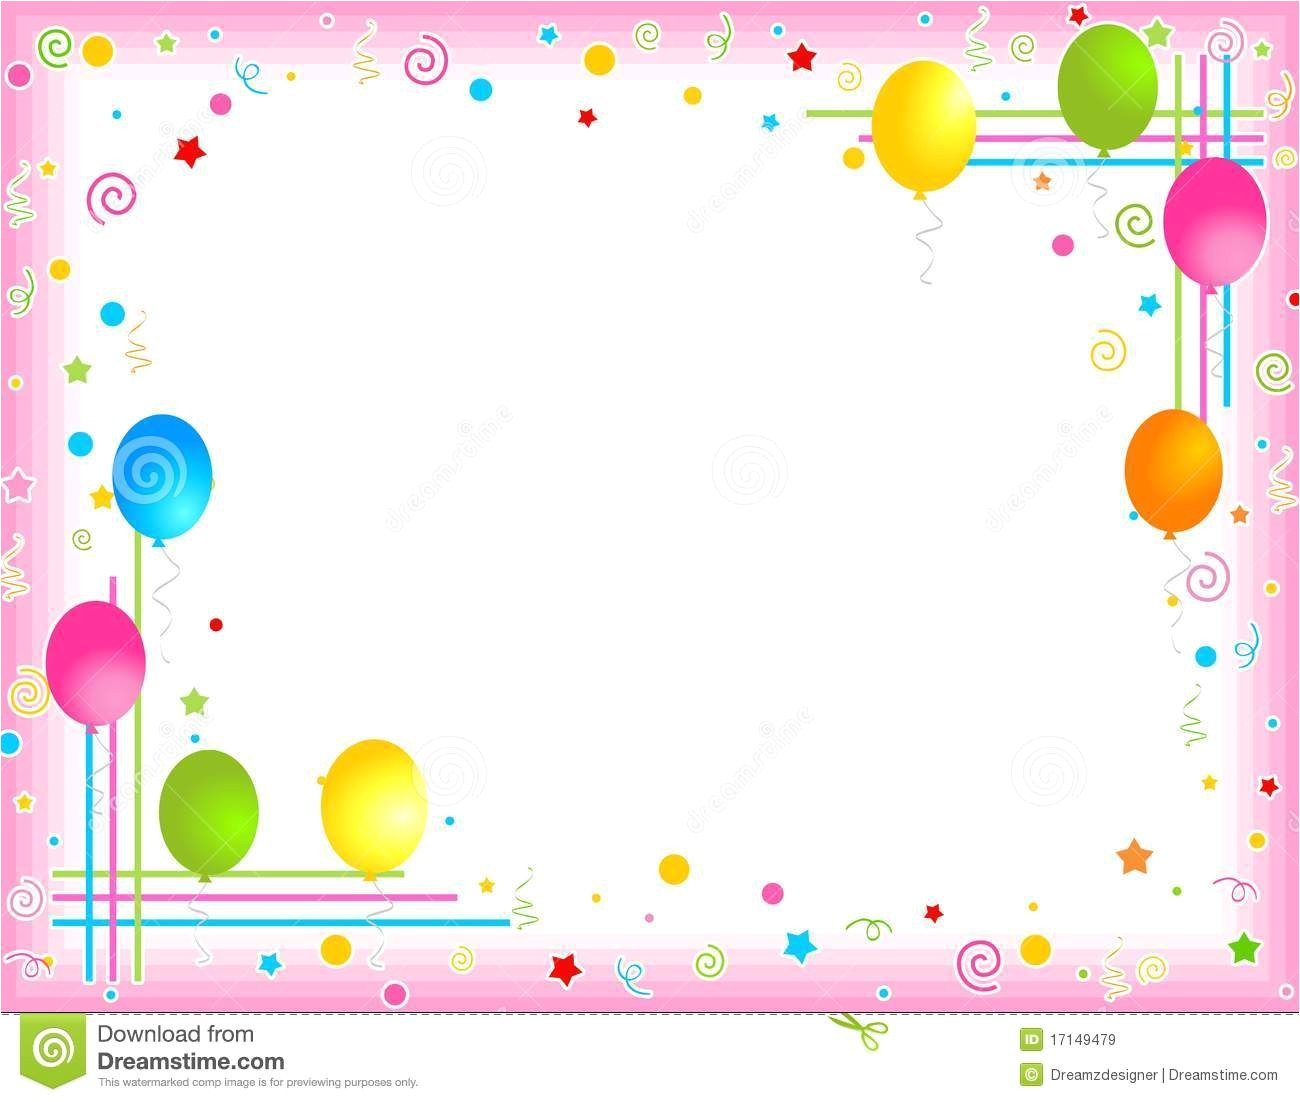 birthday party border clipart